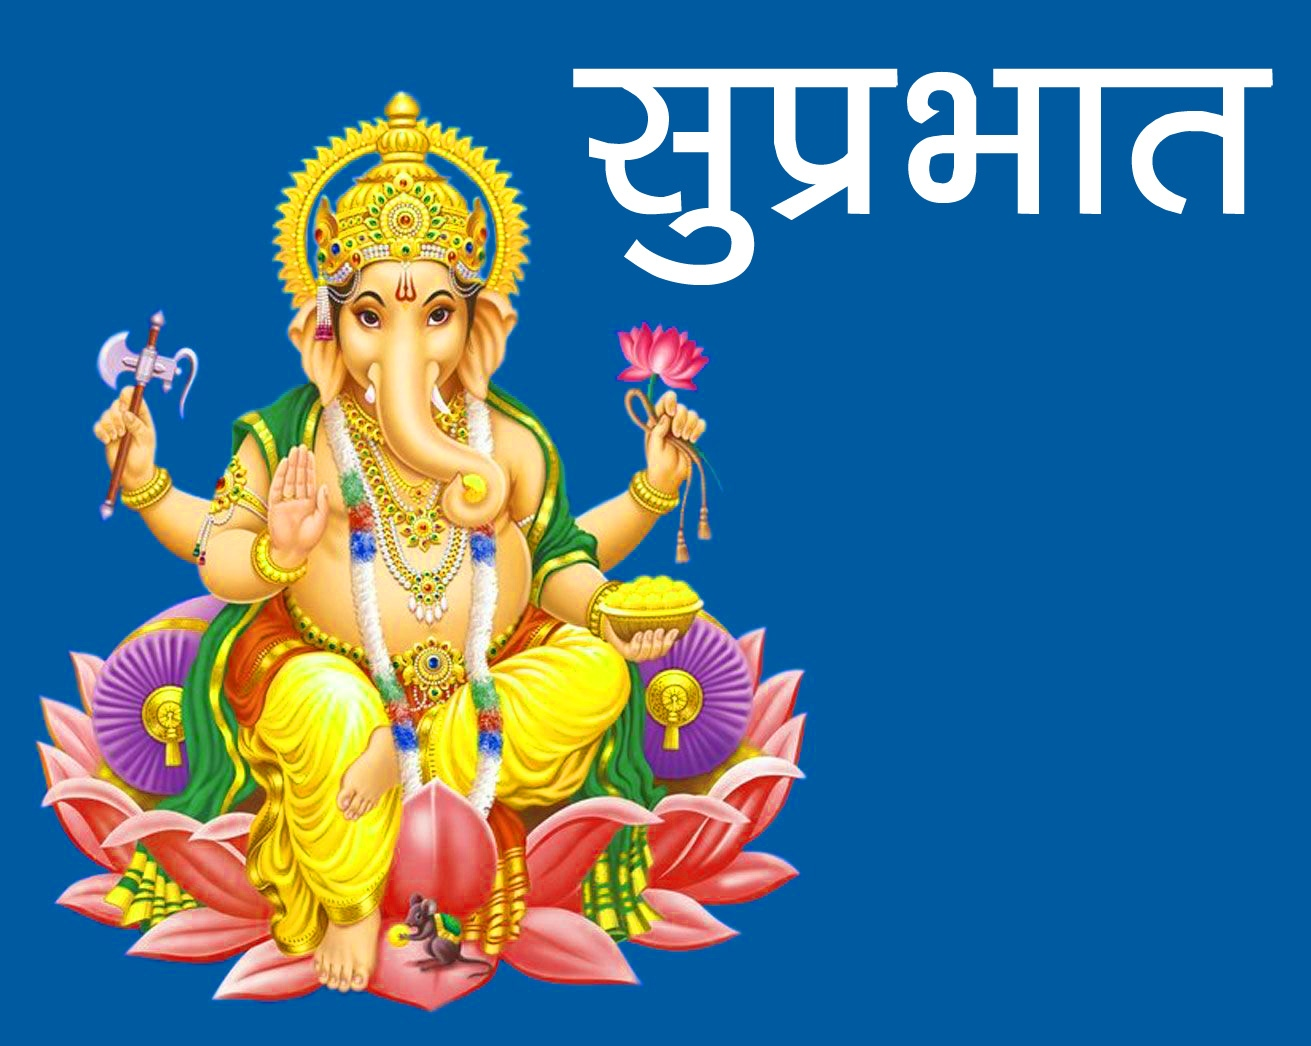 god Ganesha Good Morning Wallpaper Free